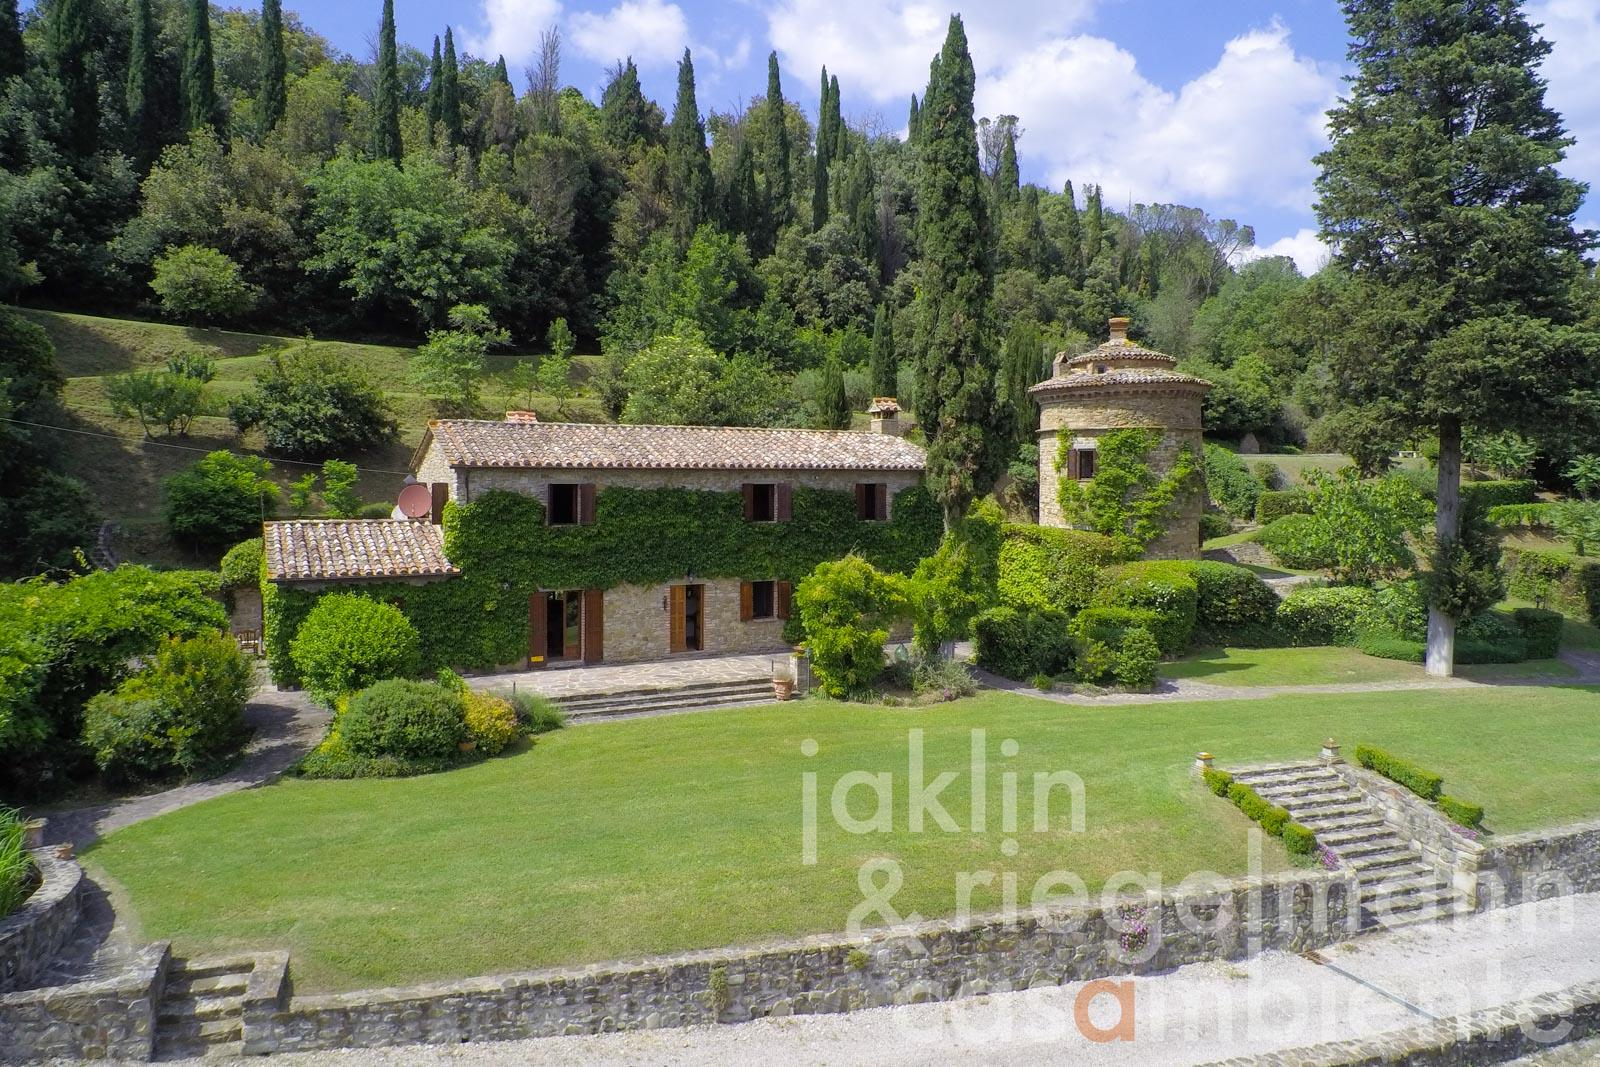 The Mediaeval country estate for sale in Tuscany with country house, tower, pool, garden and stunning views